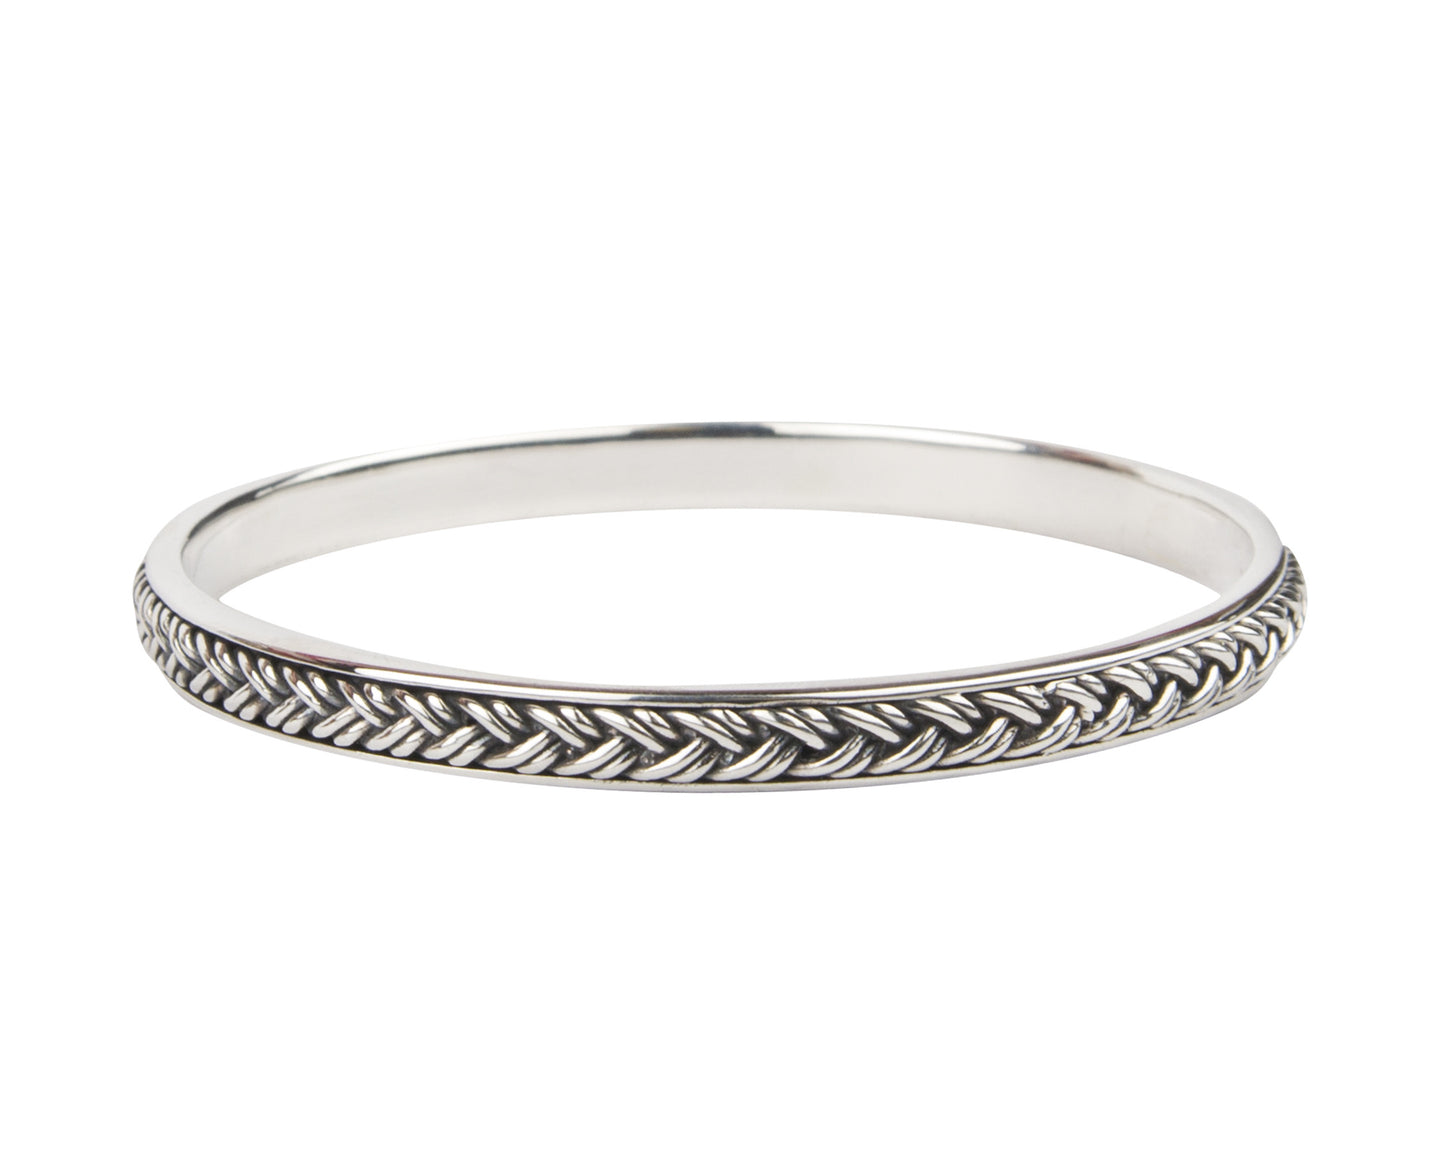 Six Strand Signature Braided Bangle